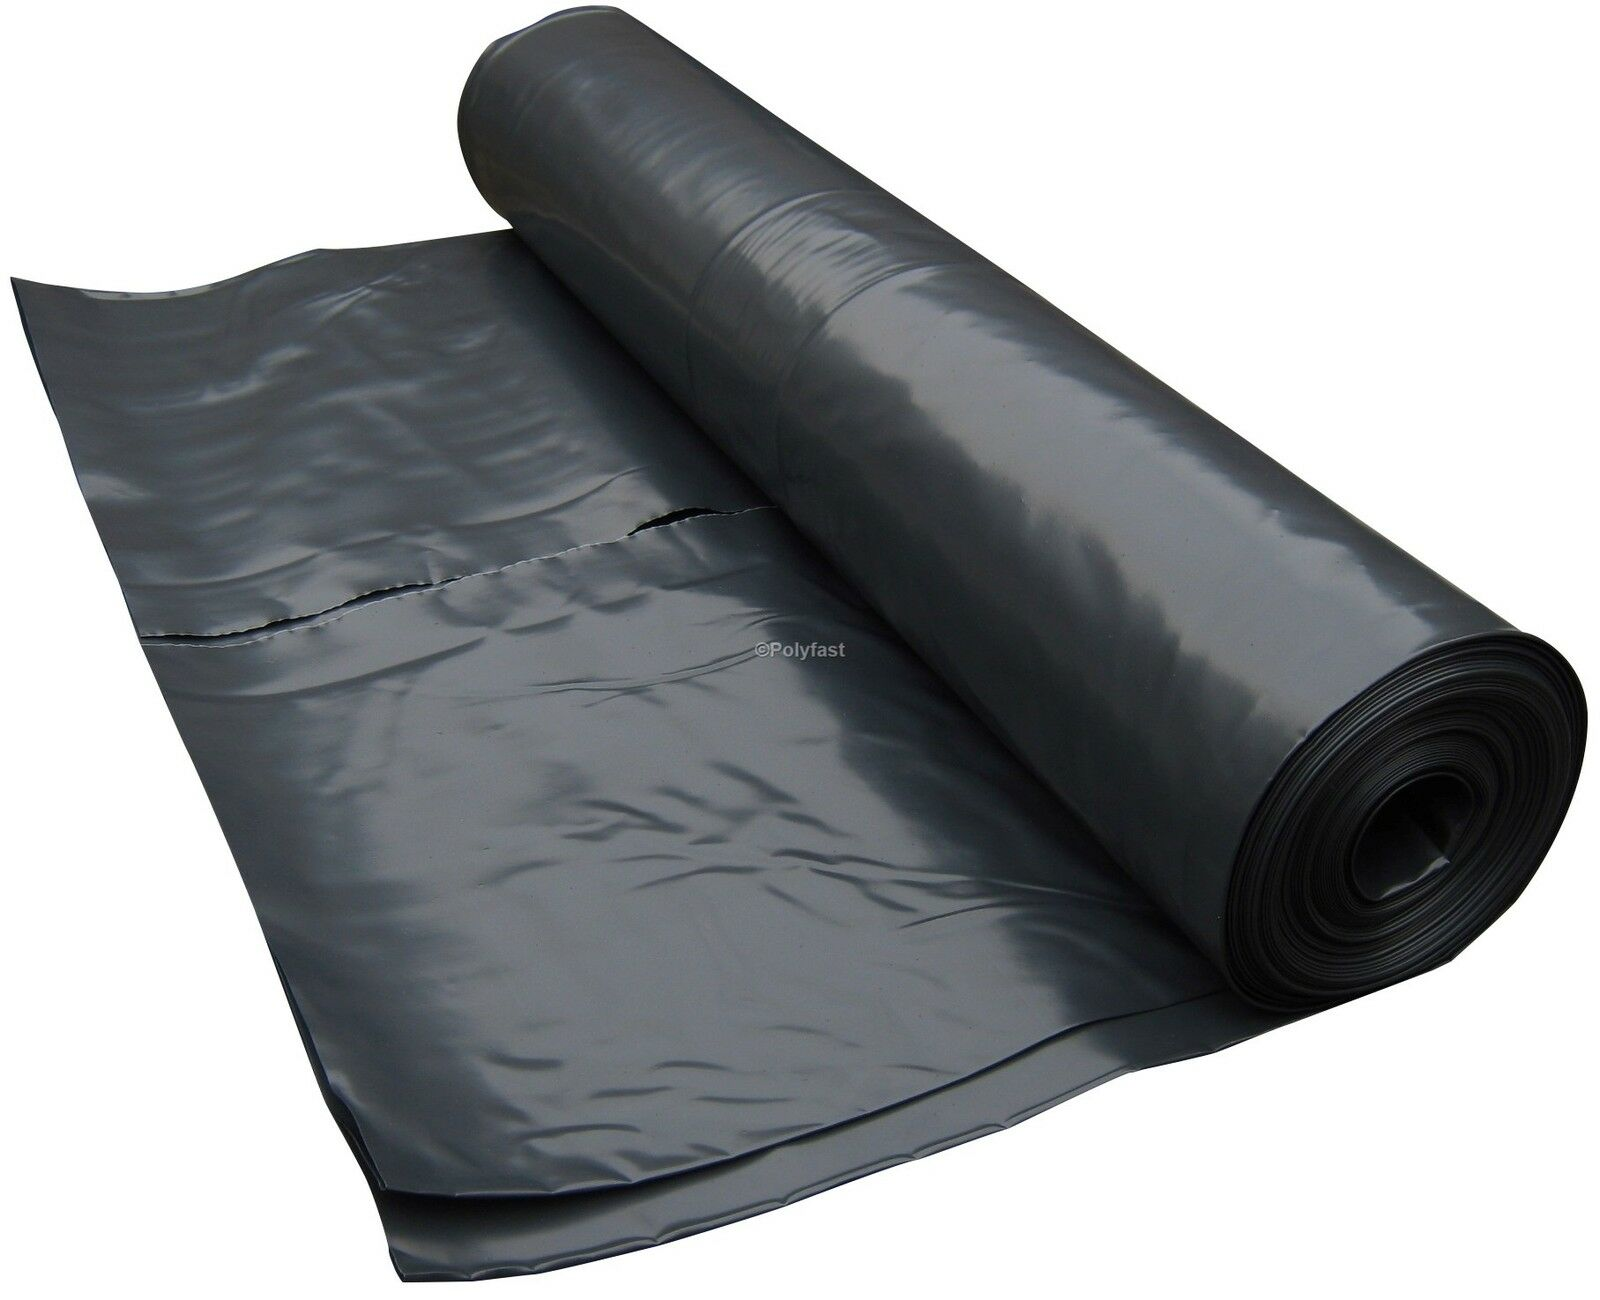 1m X 10m 500g Black Heavy Duty Polythene Plastic Sheeting Garden Diy Material Other Building Materials